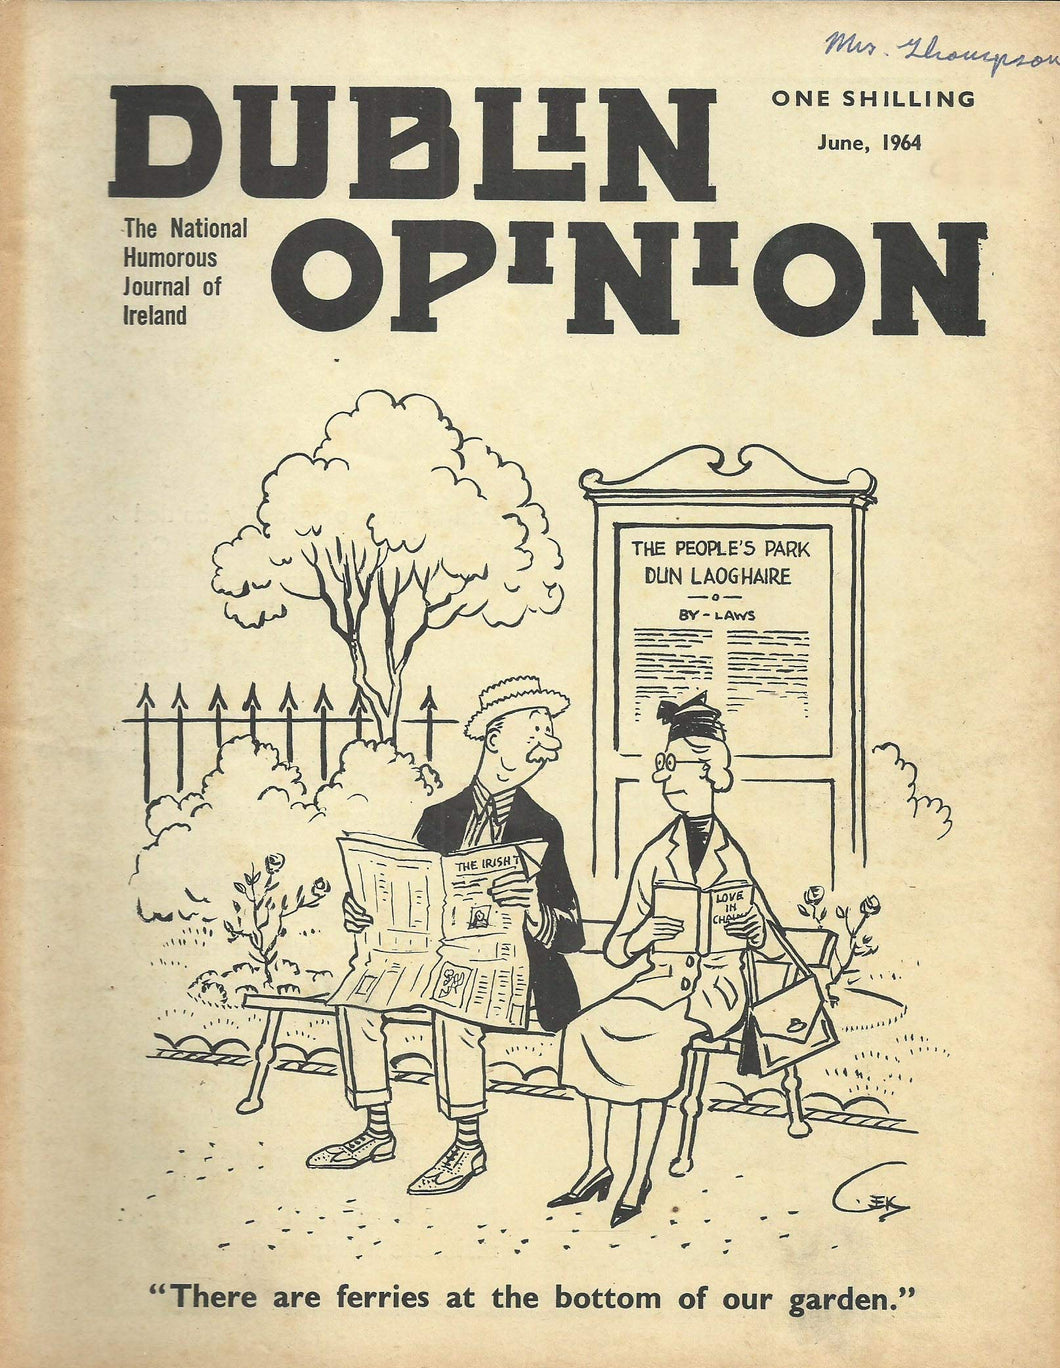 Dublin Opinion - June, 1964 - The National Humorous Journal of Ireland